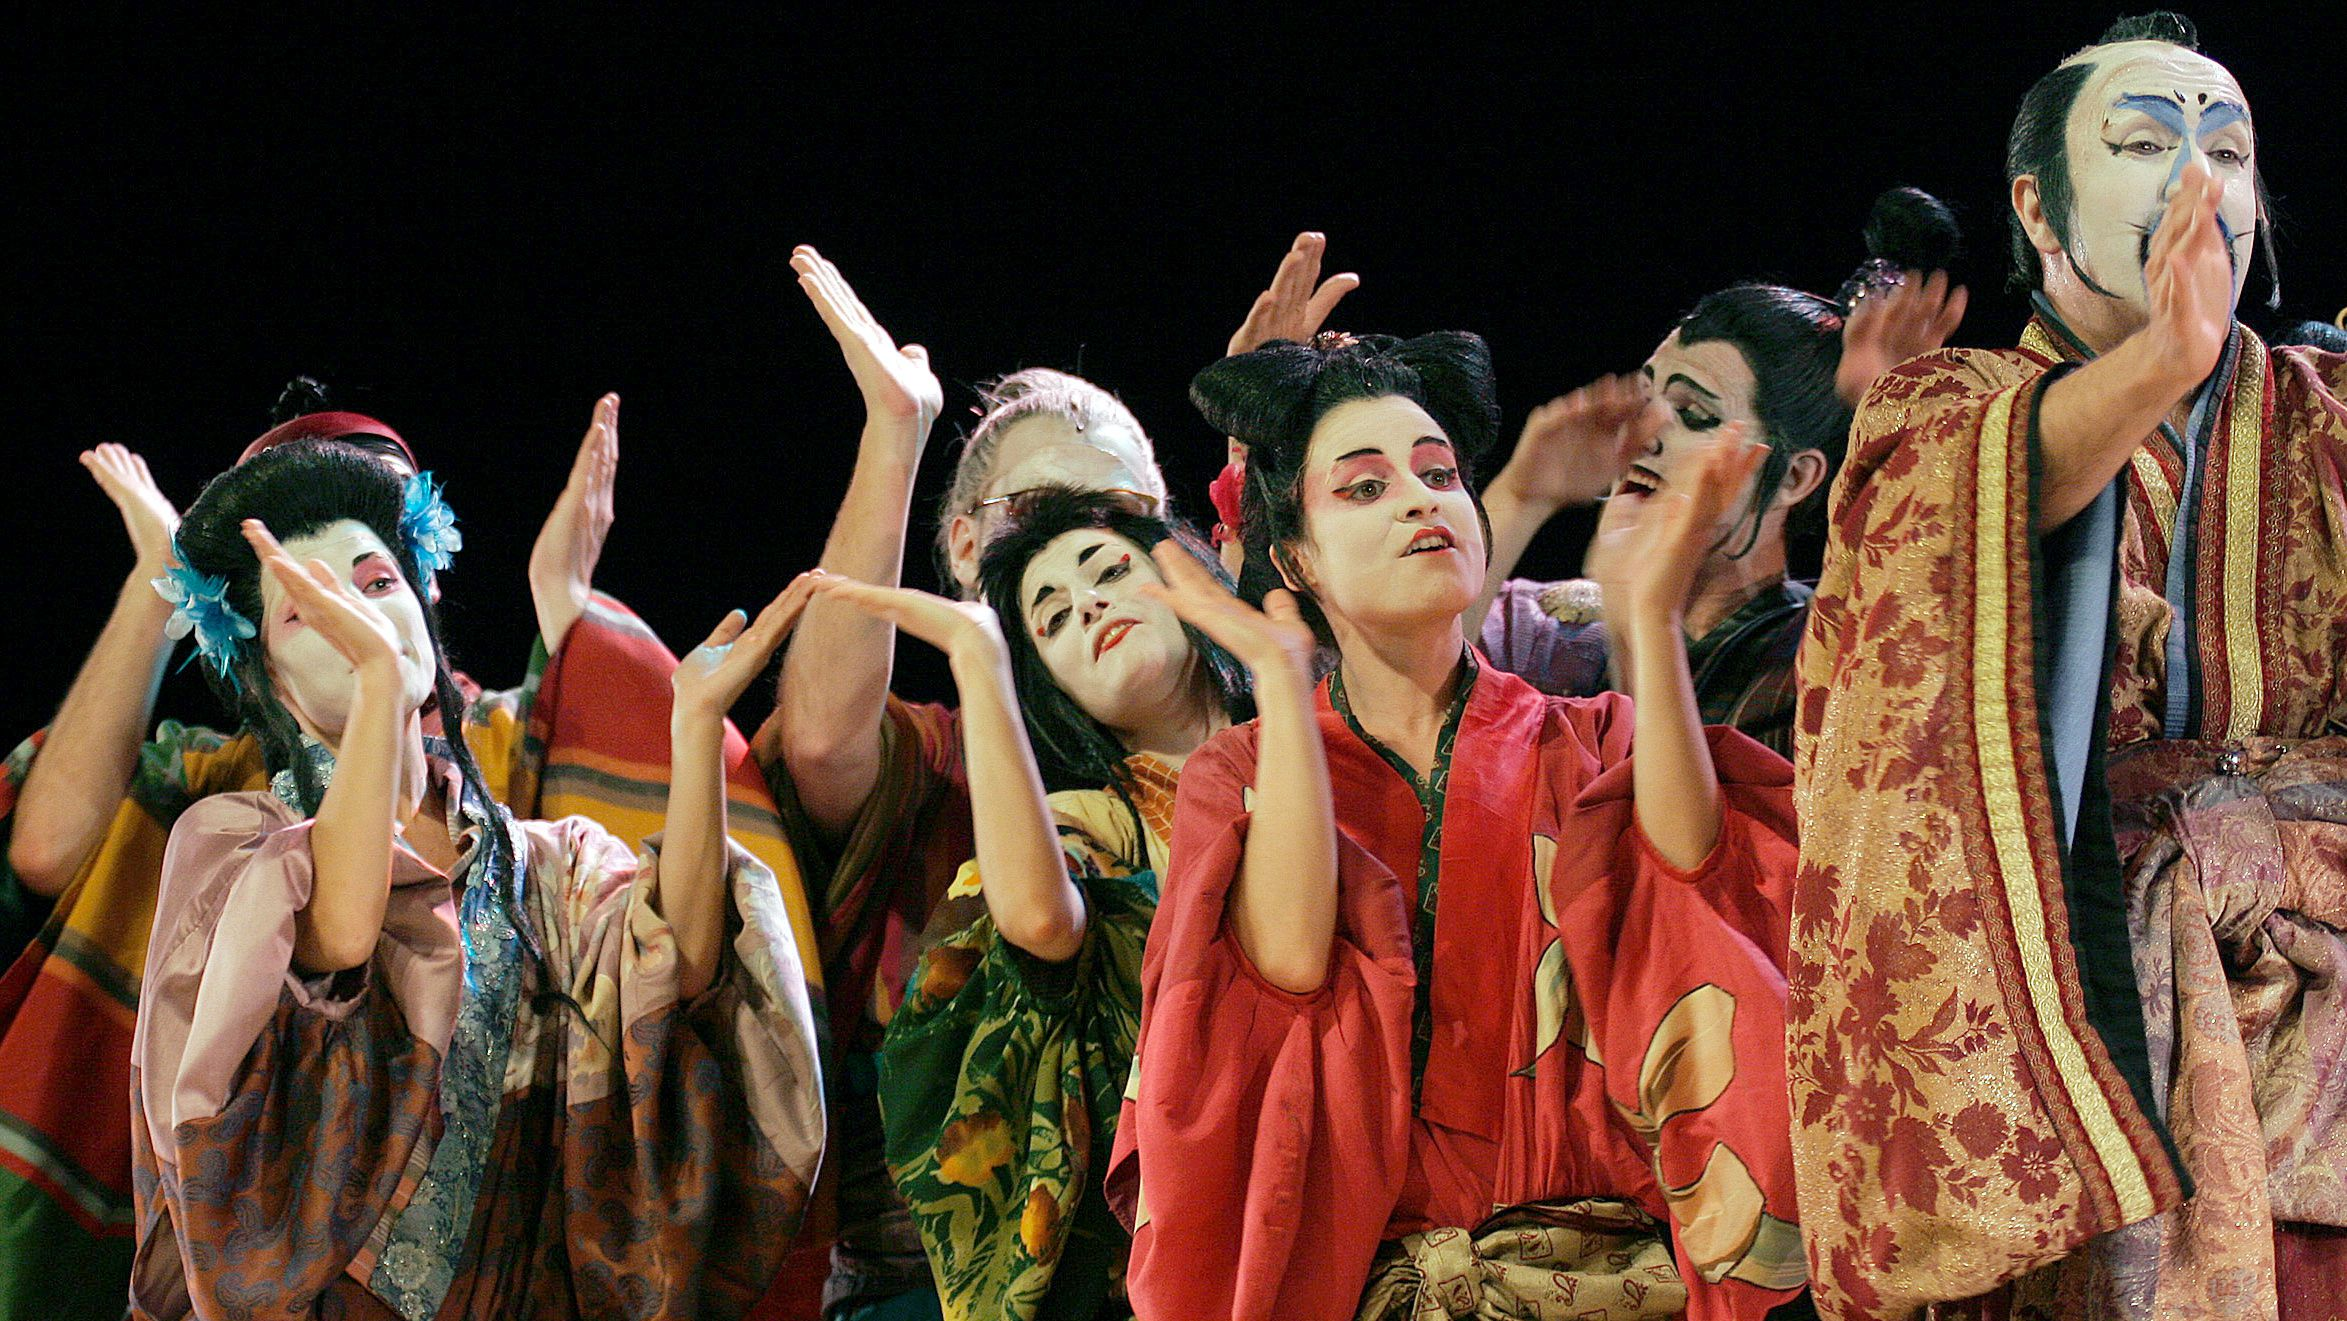 Actors from the Dagoll Dagom company perform during a performance of 'El Mikado' opera by Gilbert & Sullivan at El Ejido's Theatre International Festival in El Ejido, southeast Spain May 20, 2006 late. The festival will run until June 10, 2006. Photograph taken on May 20, 2006. REUTERS/Francisco Bonilla racist mikado yellowface japan japanese asian americans